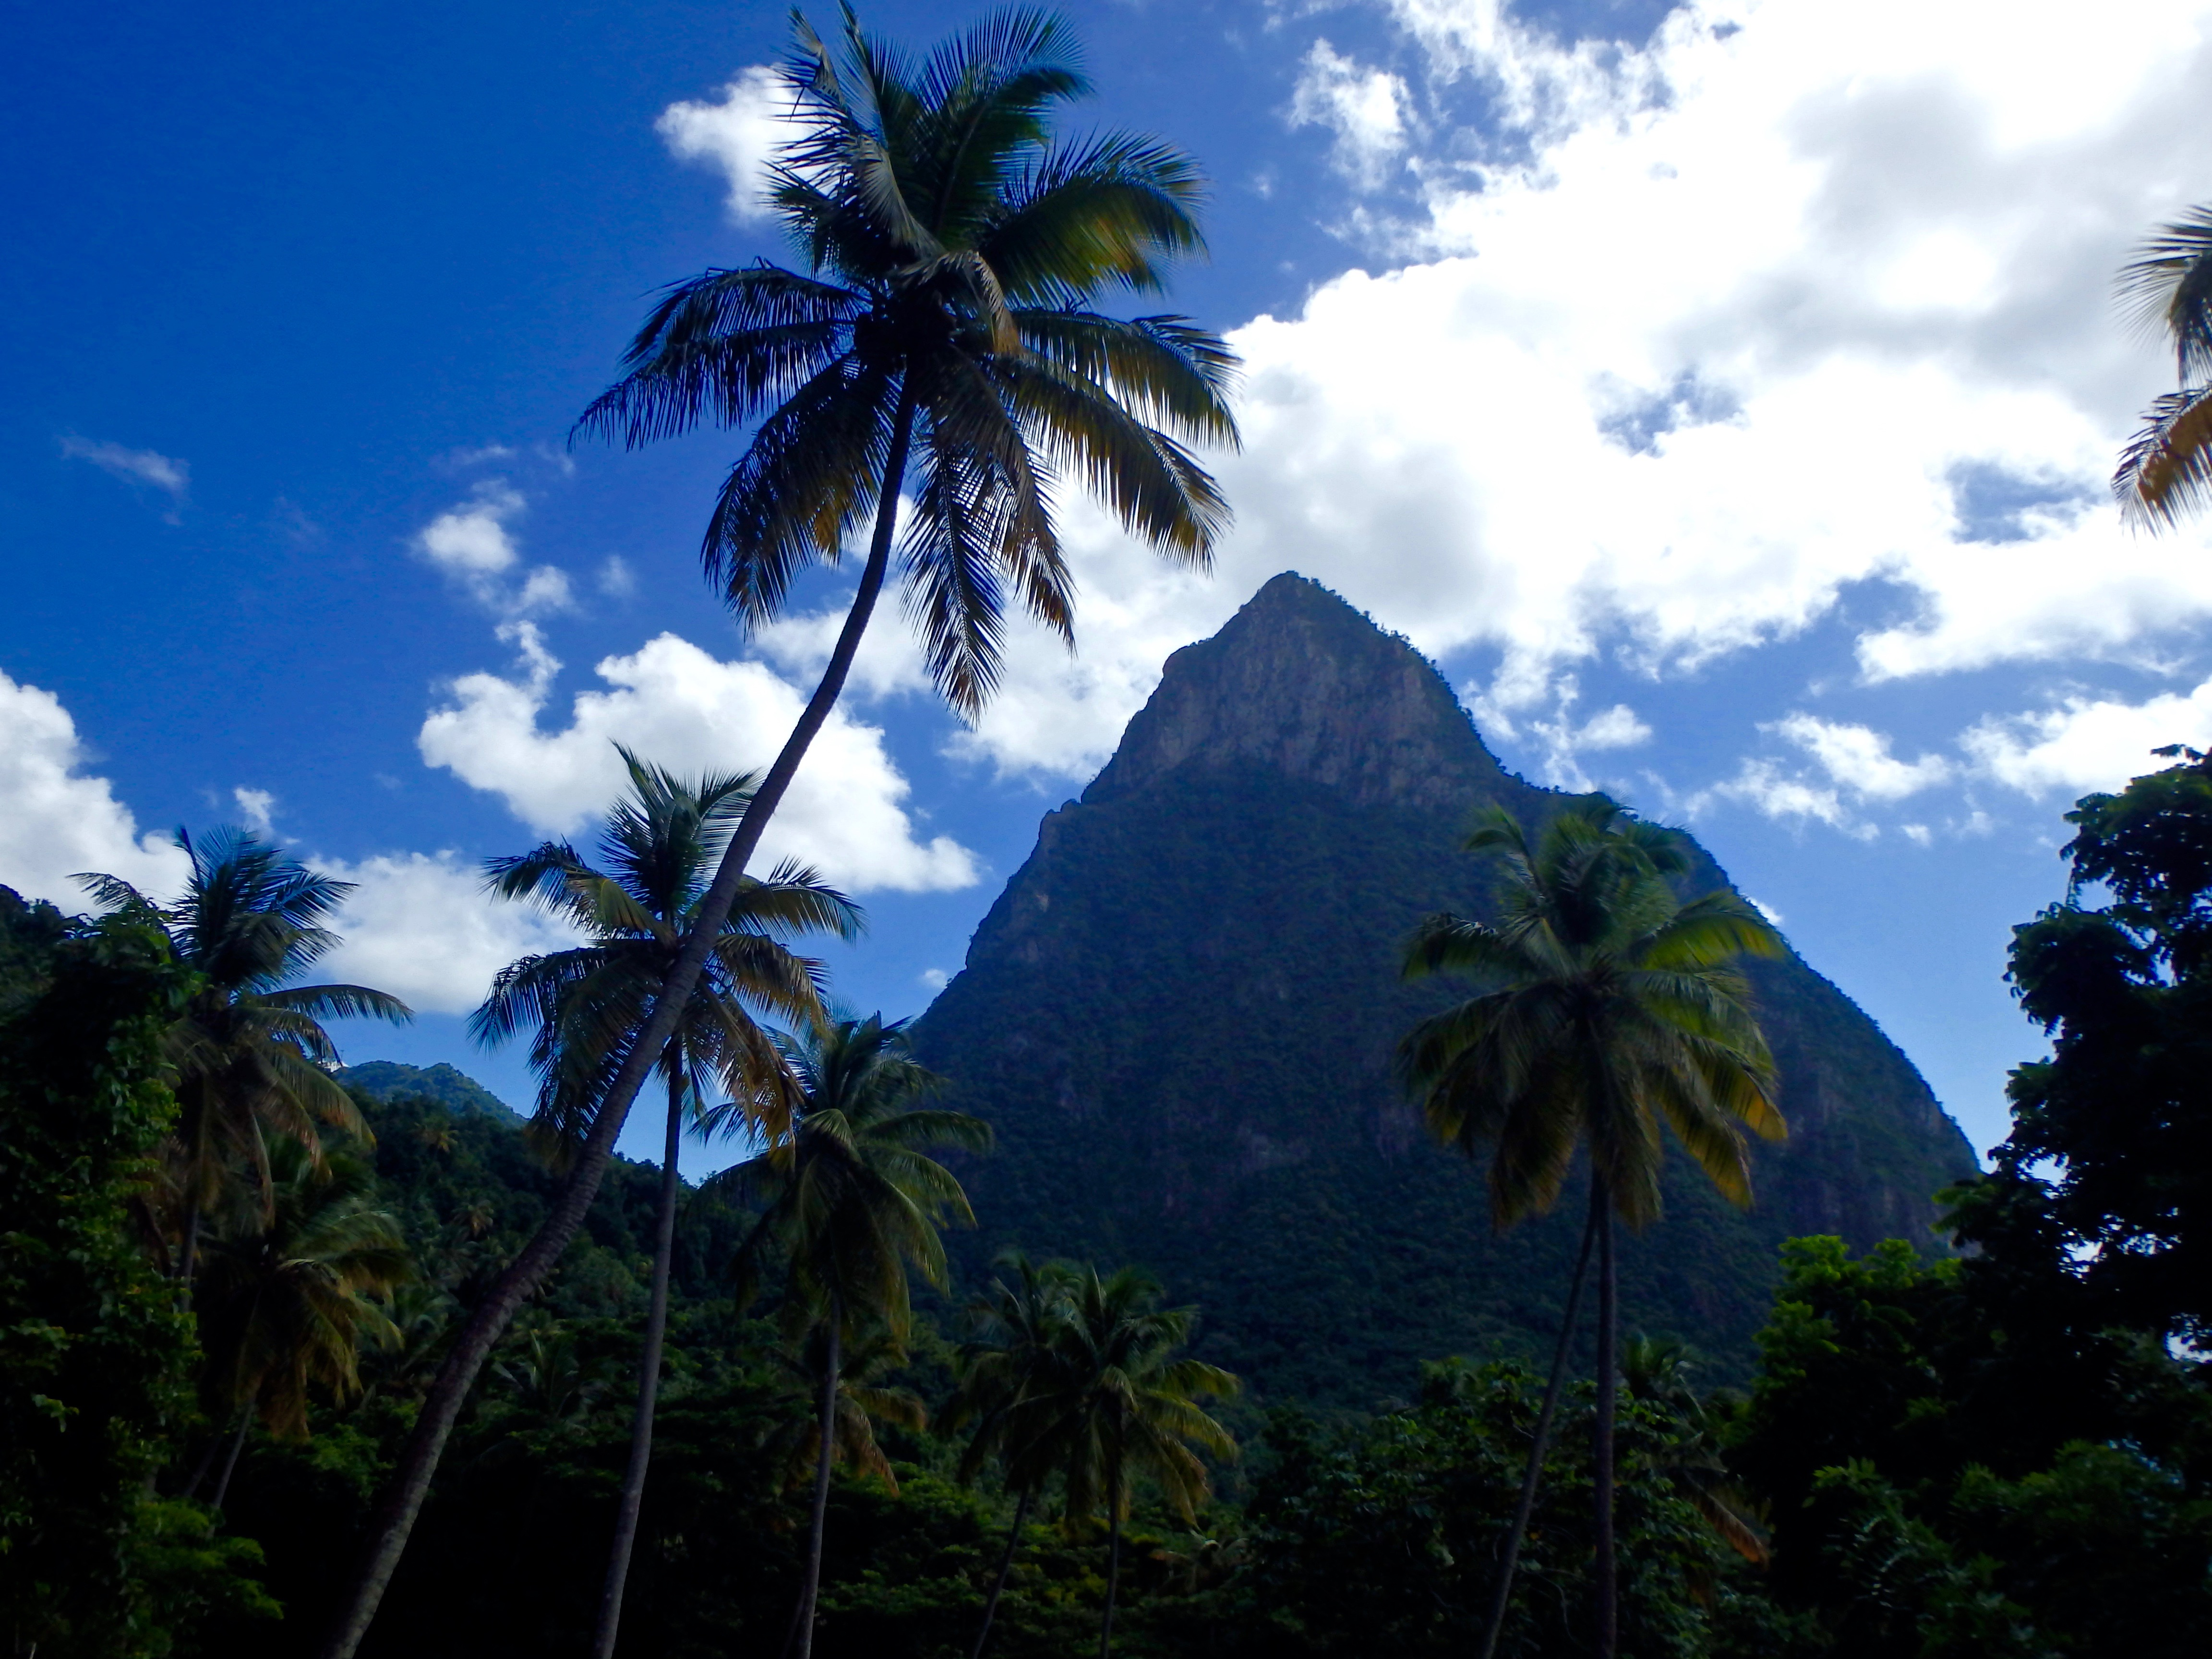 how to get to st lucia ferry to st lucia can I take a boat to st lucia